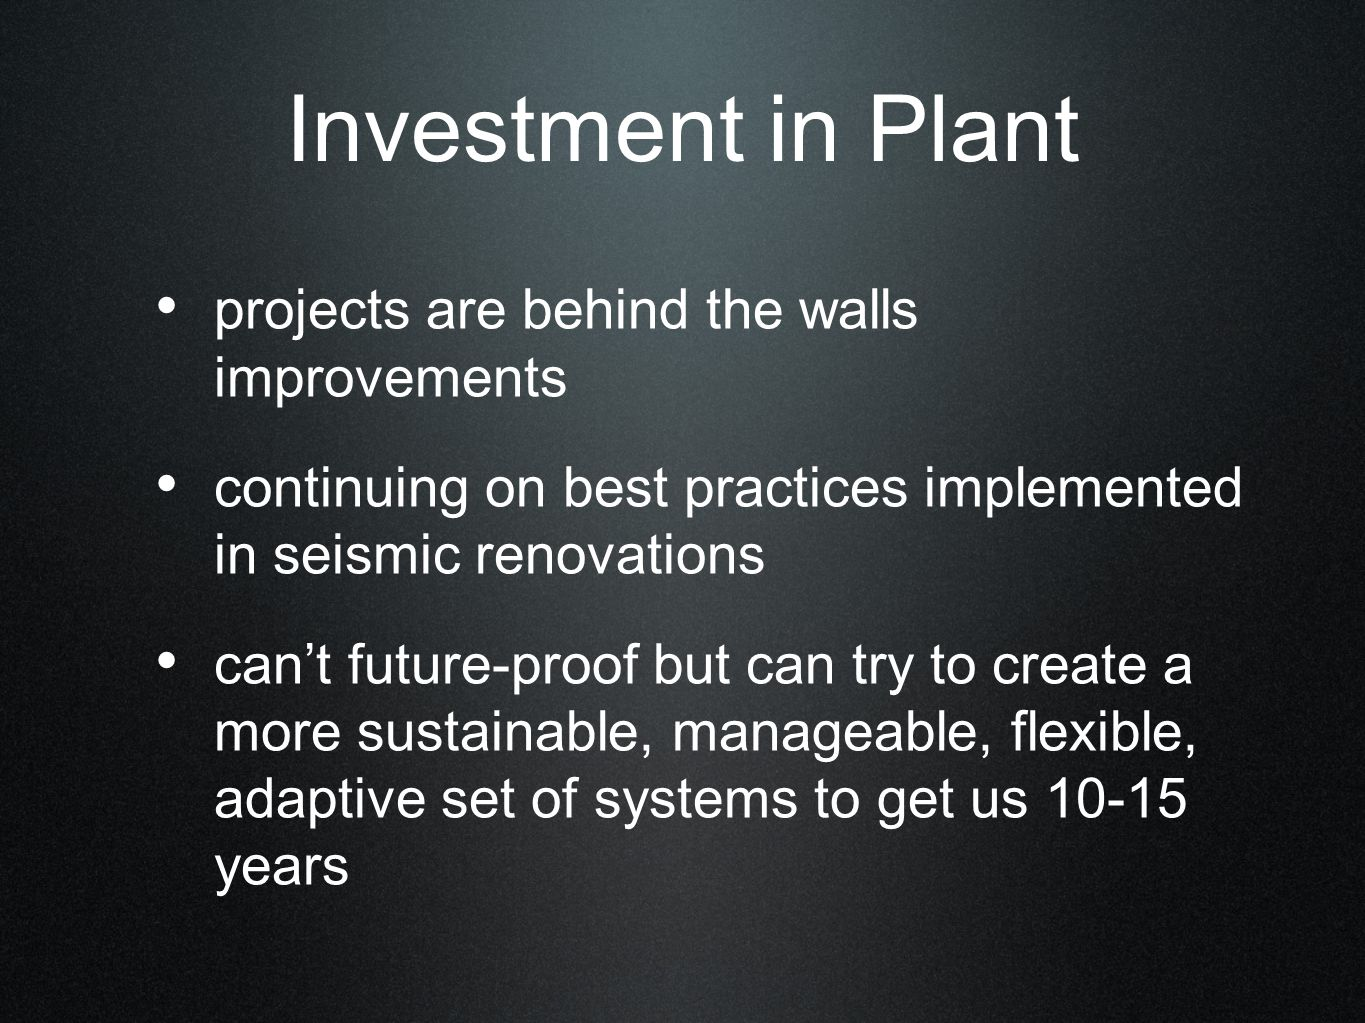 Investment in Plant projects are behind the walls improvements continuing on best practices implemented in seismic renovations can't future-proof but can try to create a more sustainable, manageable, flexible, adaptive set of systems to get us 10-15 years